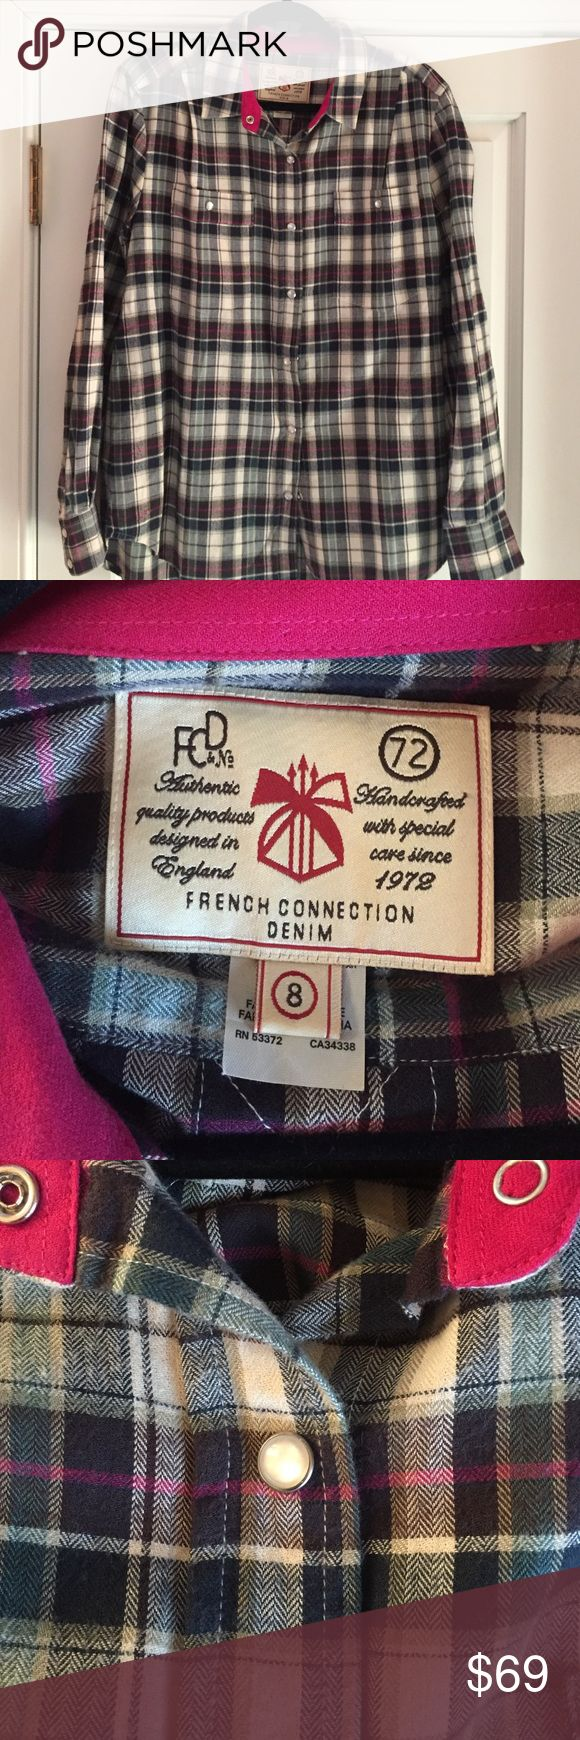 French Connection Plaid Shirt Amazingly soft and comfortable plaid shirt. It has only been worn twice. Beautiful fabric and colors. The buttons are shiny and add great texture to the shirt. A perfect plaid shirt! Great with leggings and boots. French Connection Tops Button Down Shirts